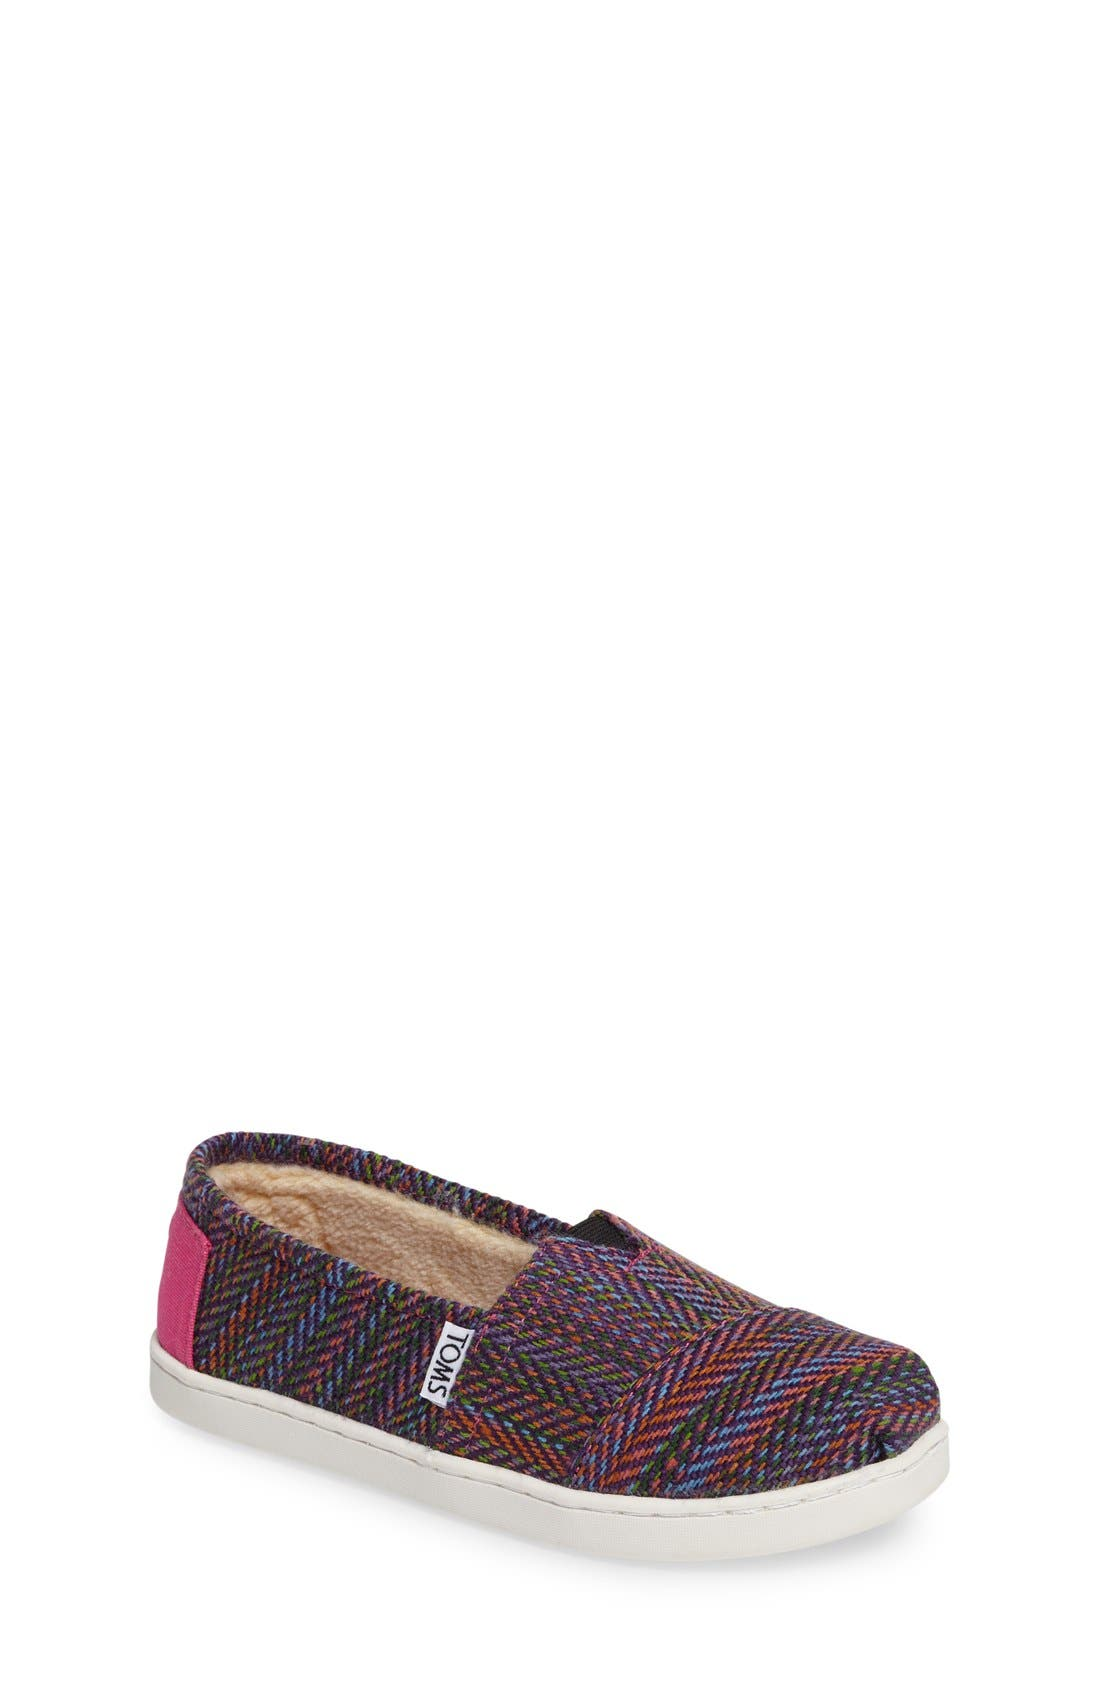 TOMS Classic Herringbone Faux Fur Lined Slip-On (Toddler, Little Kid & Big Kid)